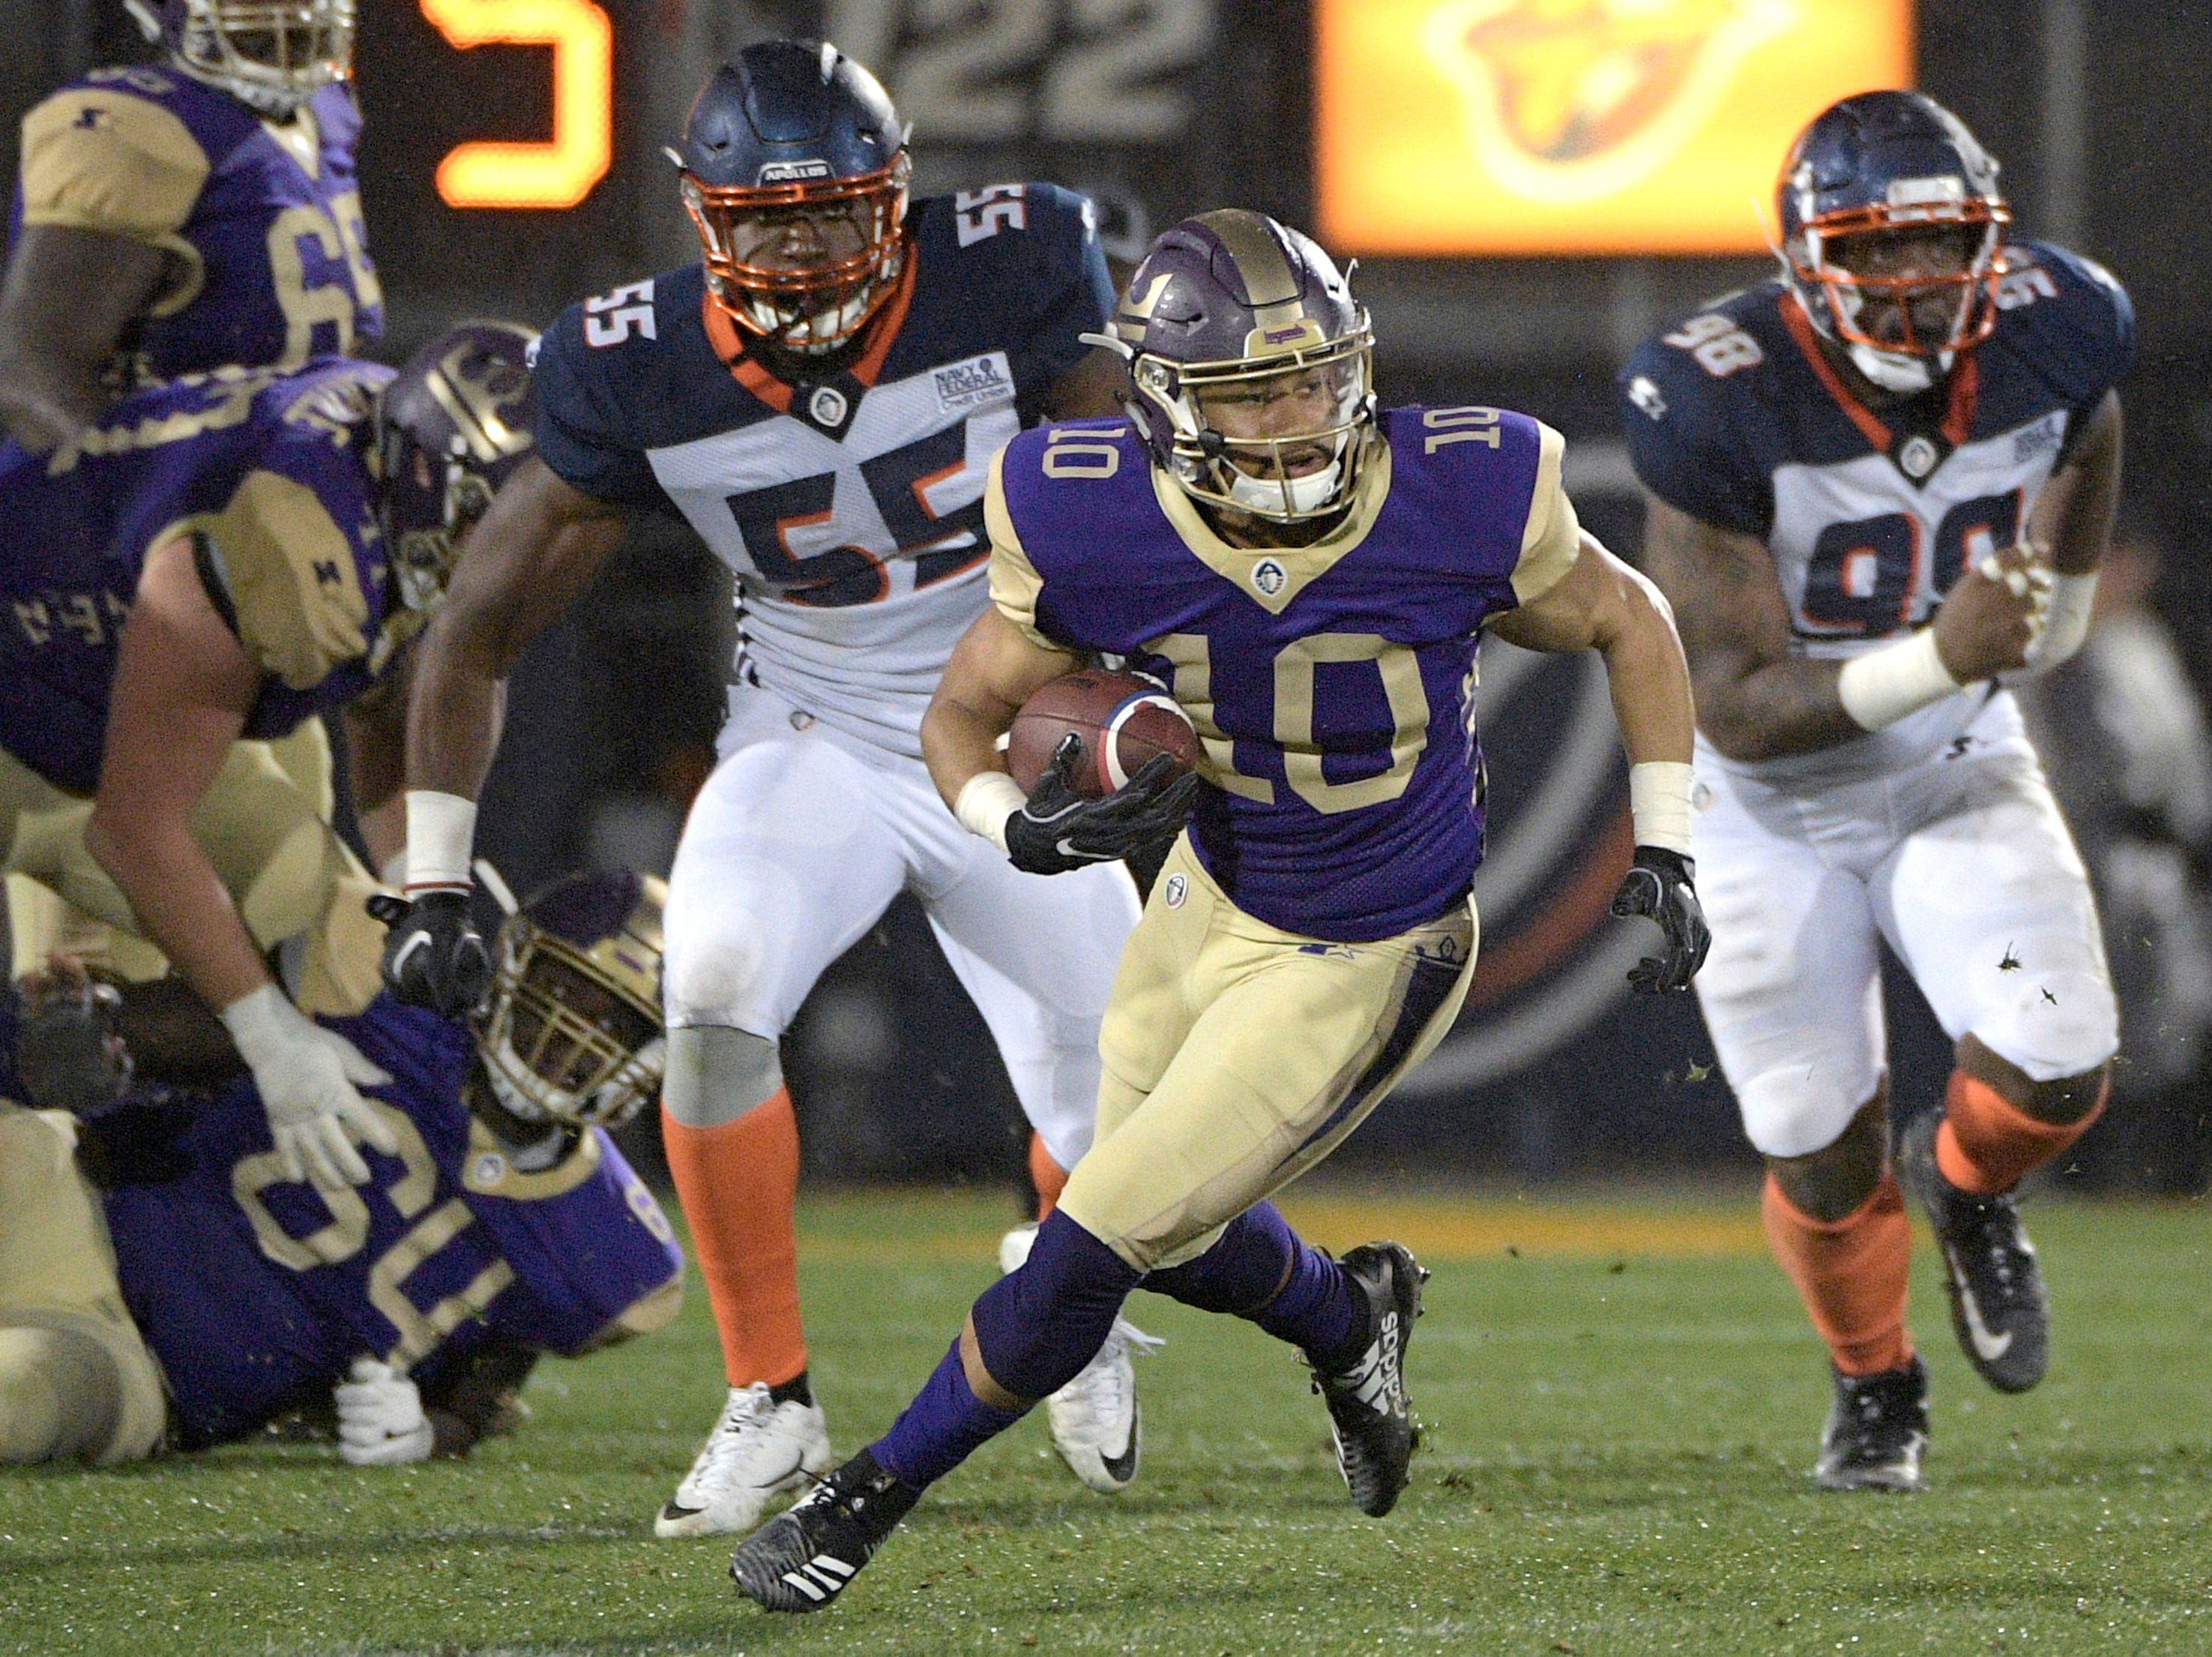 Atlanta Legends receiver Justin Thomas (10) runs with a recption in front of Orlando Apollos linebacker Andrew Ankrah (55) and defensive end Anthony Moten Jr. (98) during the second half of an Alliance of American Football game Saturday, Feb. 9, 2019, in Orlando, Fla. (AP Photo/Phelan M. Ebenhack)